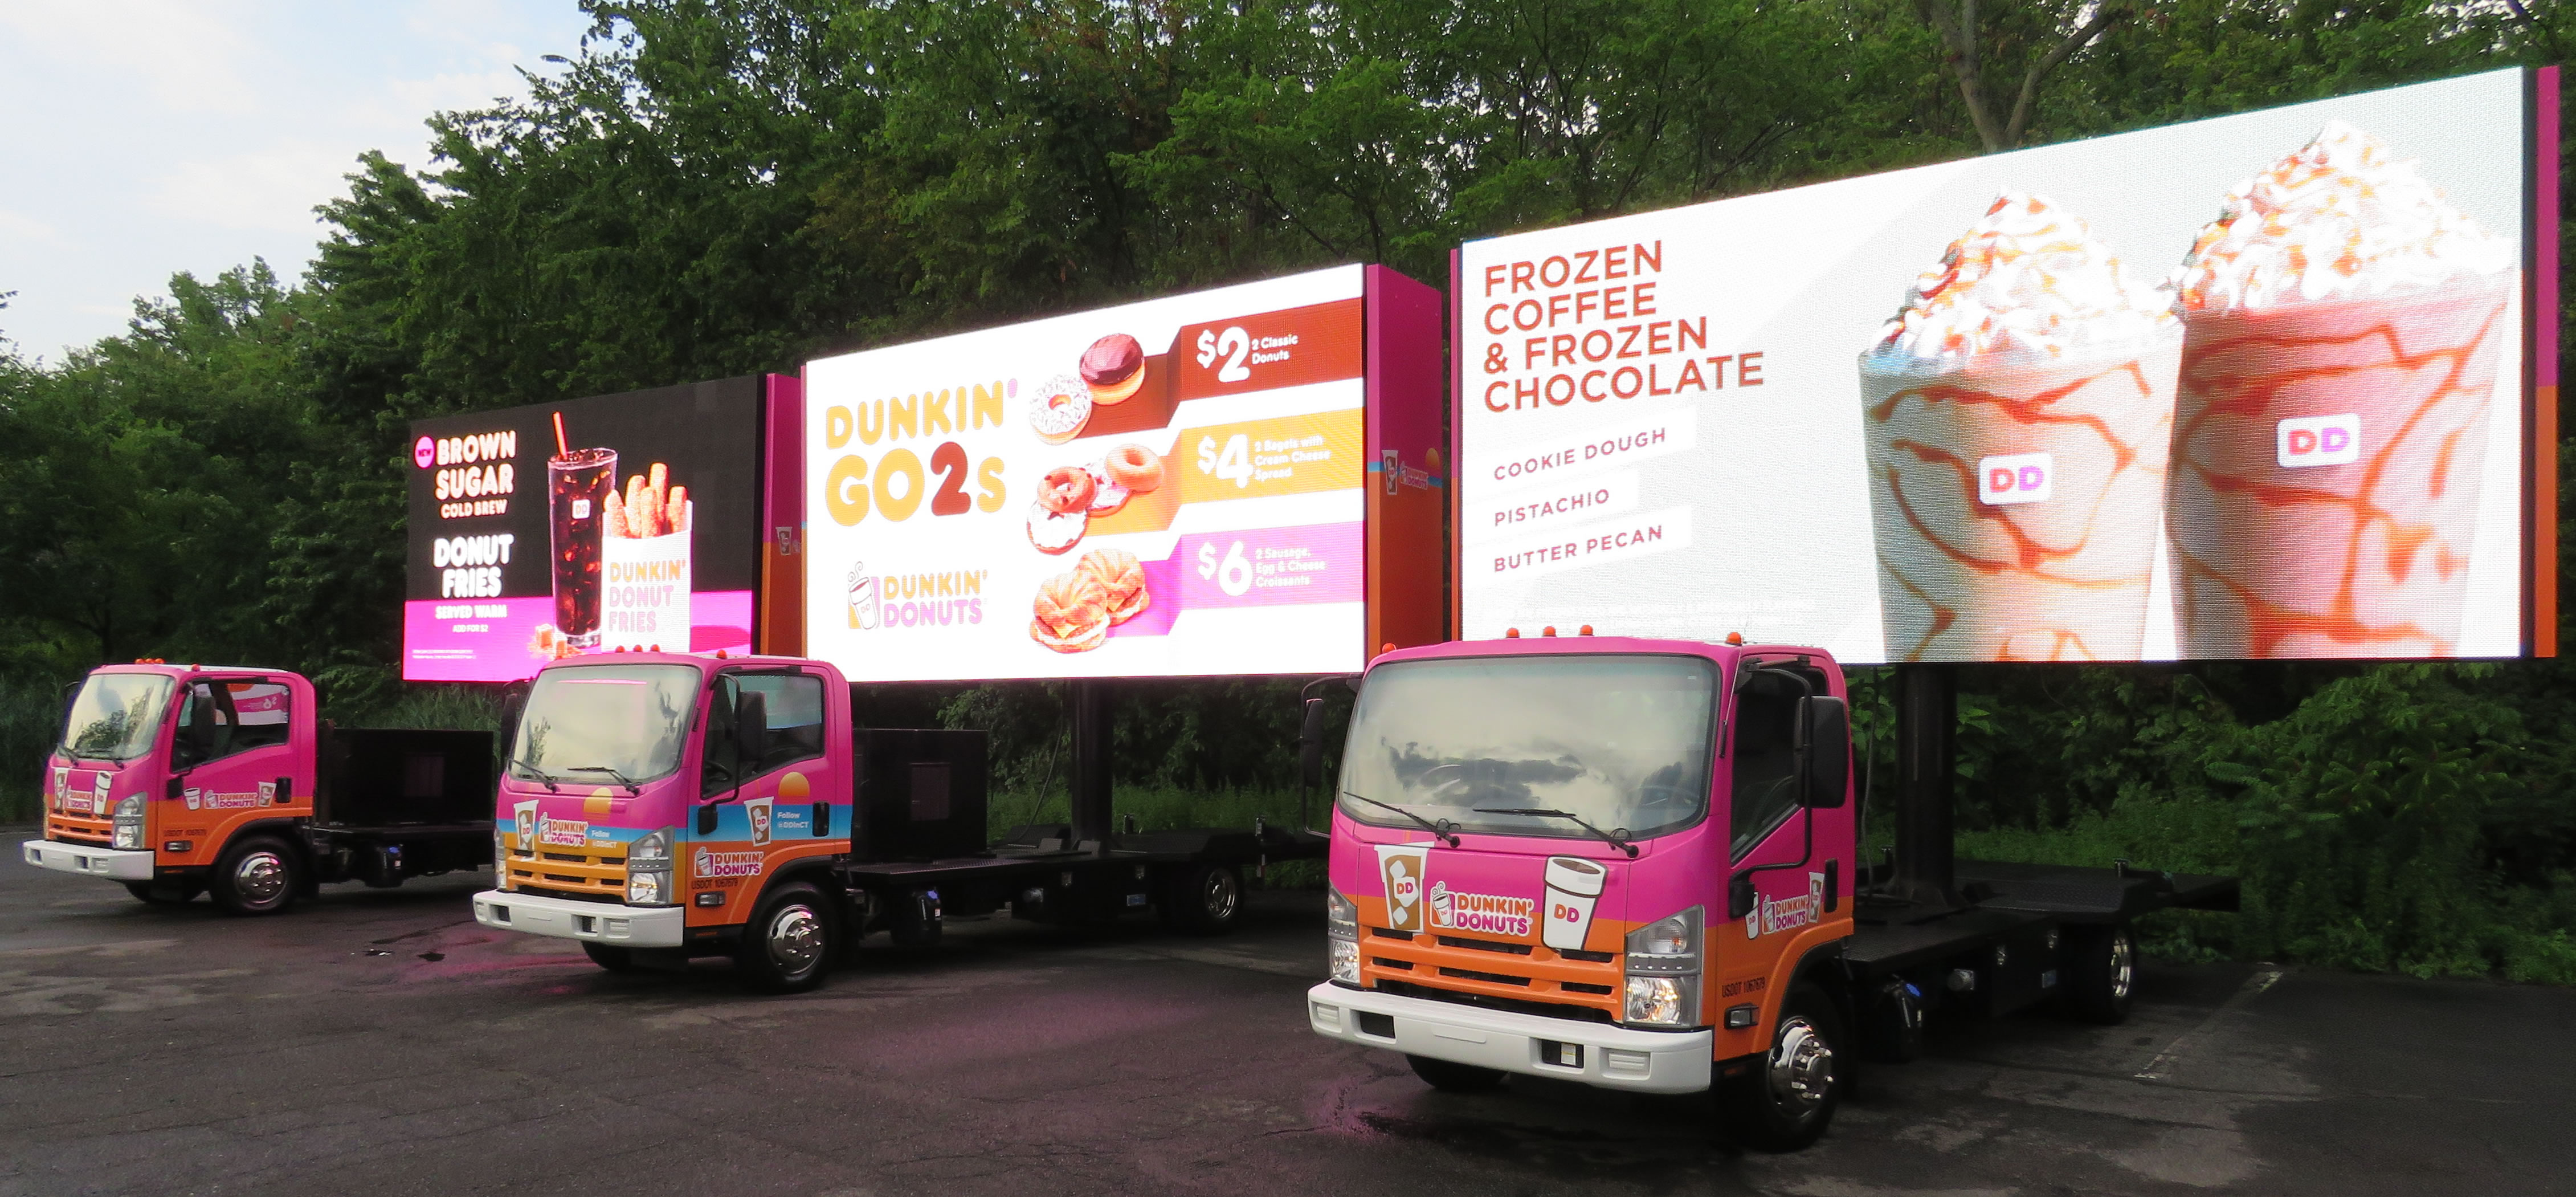 This Is a First for Mobile Billboards- Digital Poster-Size